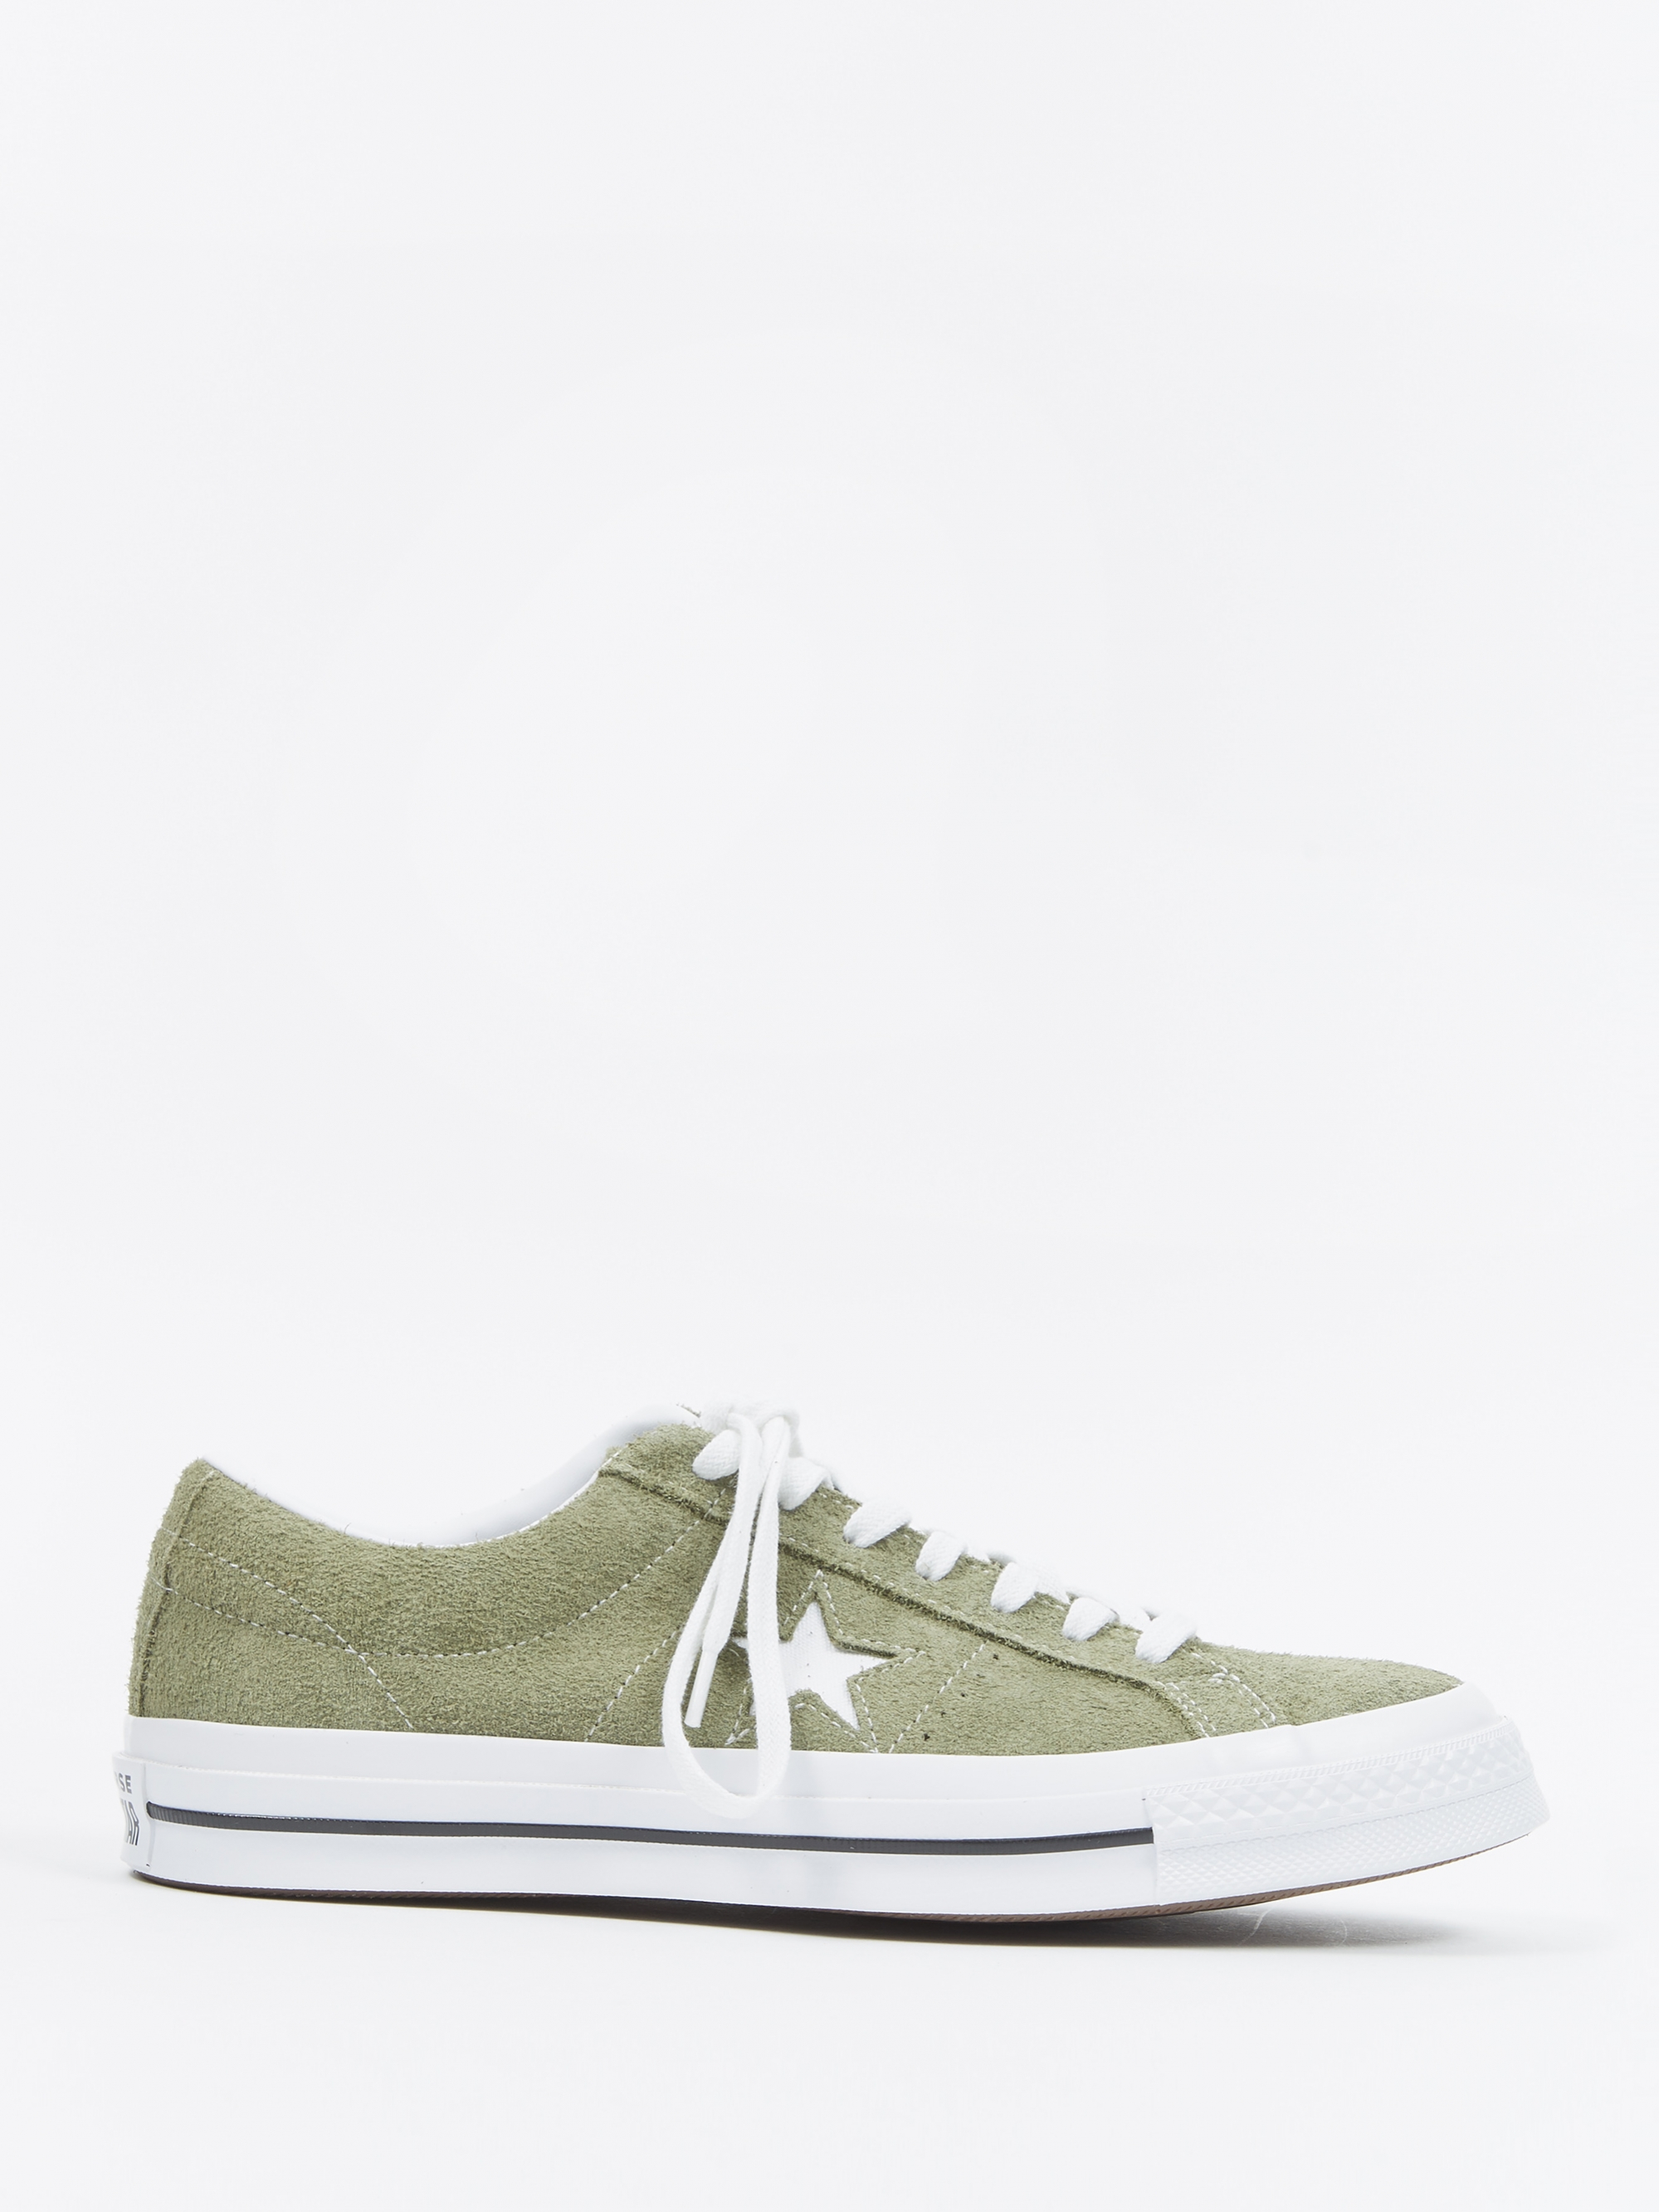 013498143d1e5f Converse One Star Ox - Field Surplus White